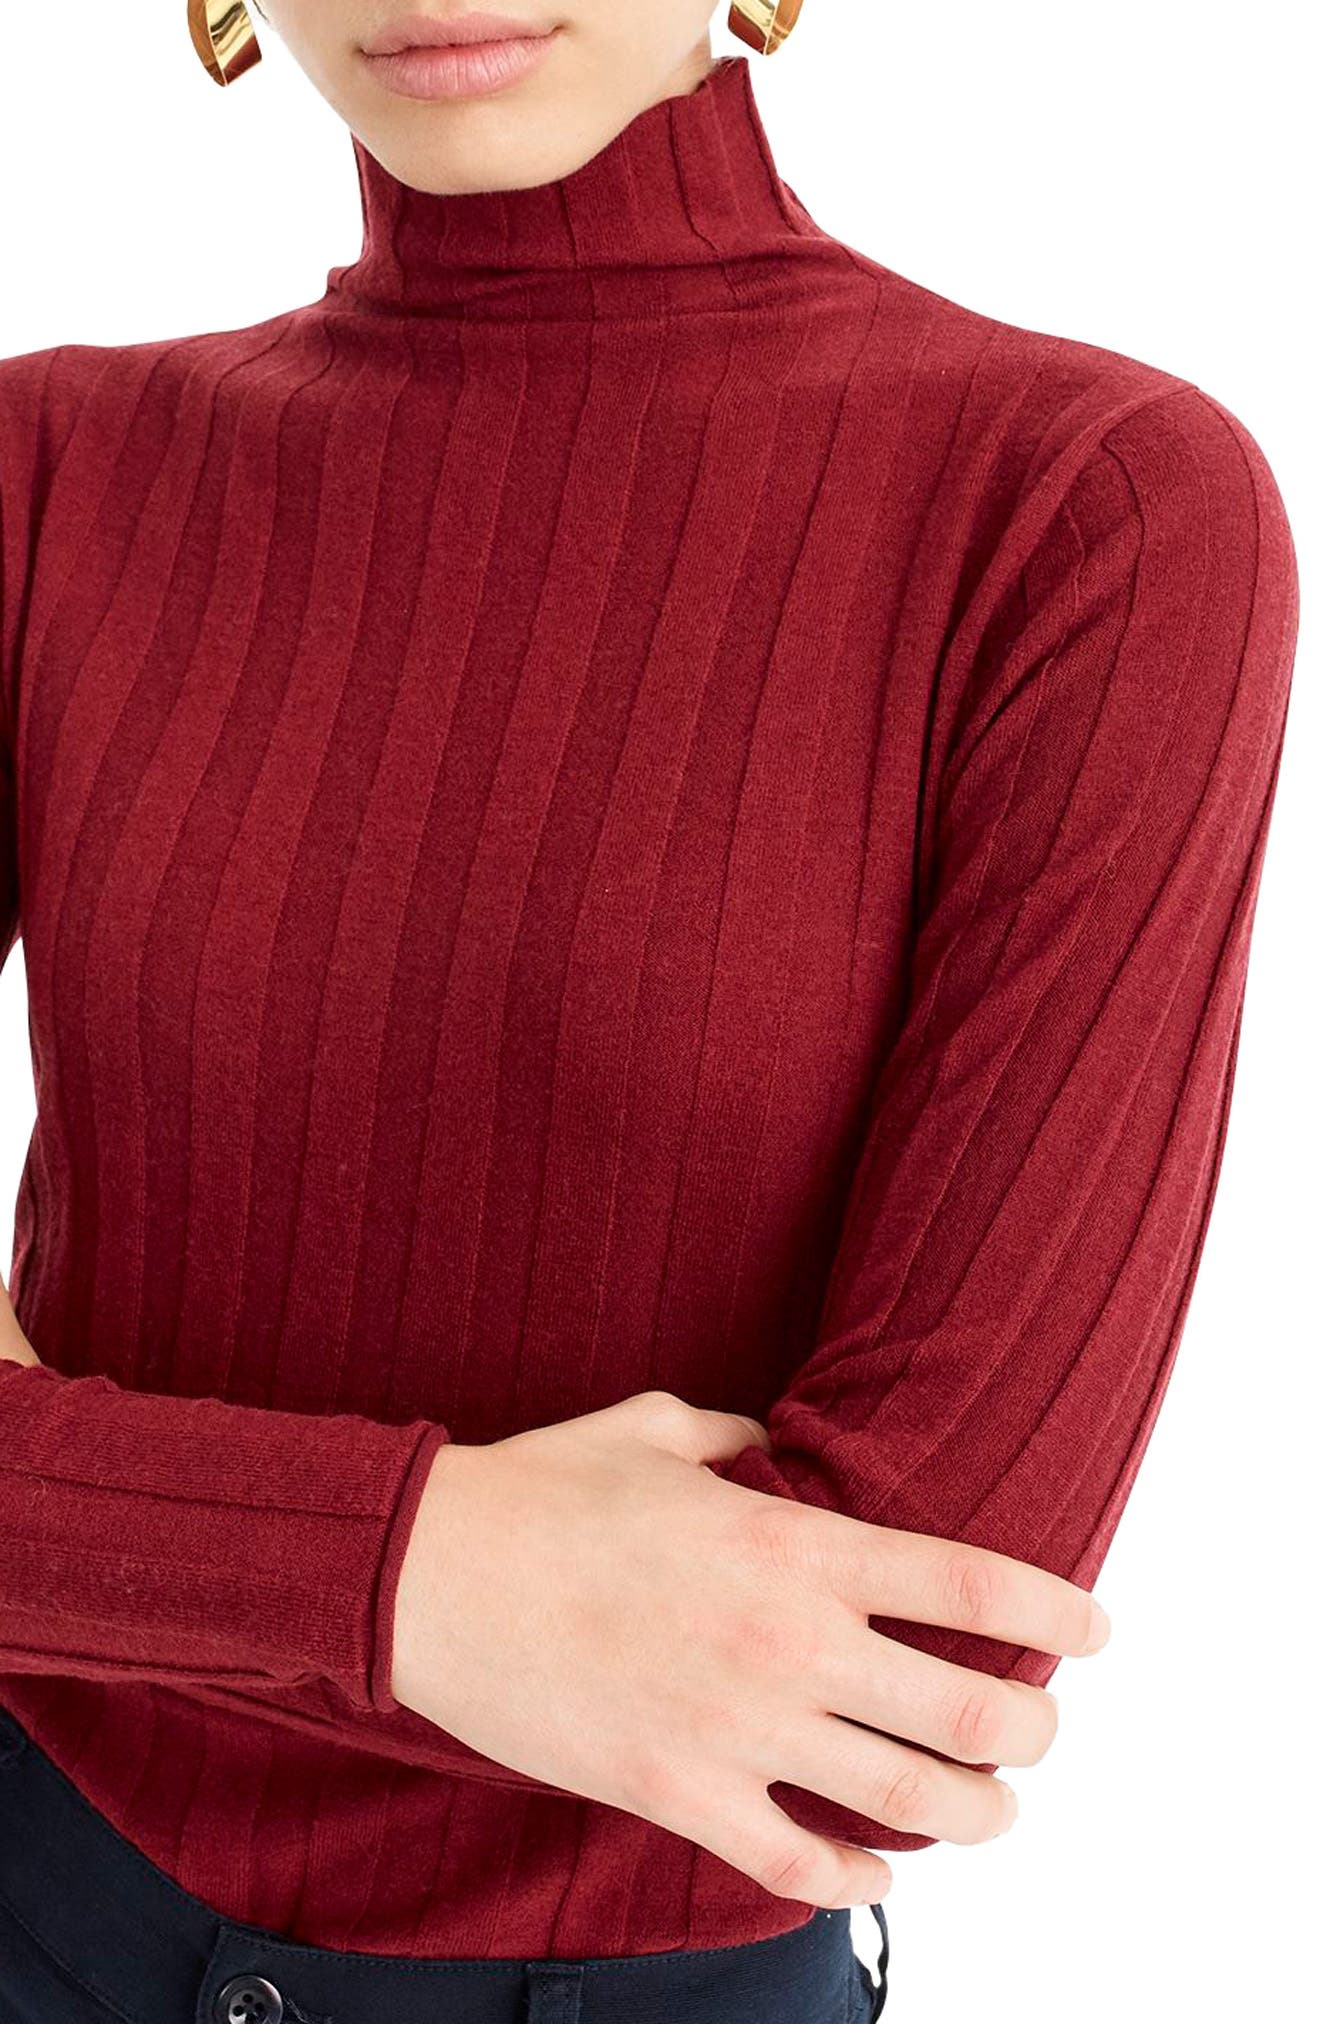 365 Stretch Ribbed Turtleneck Sweater,                             Alternate thumbnail 4, color,                             930